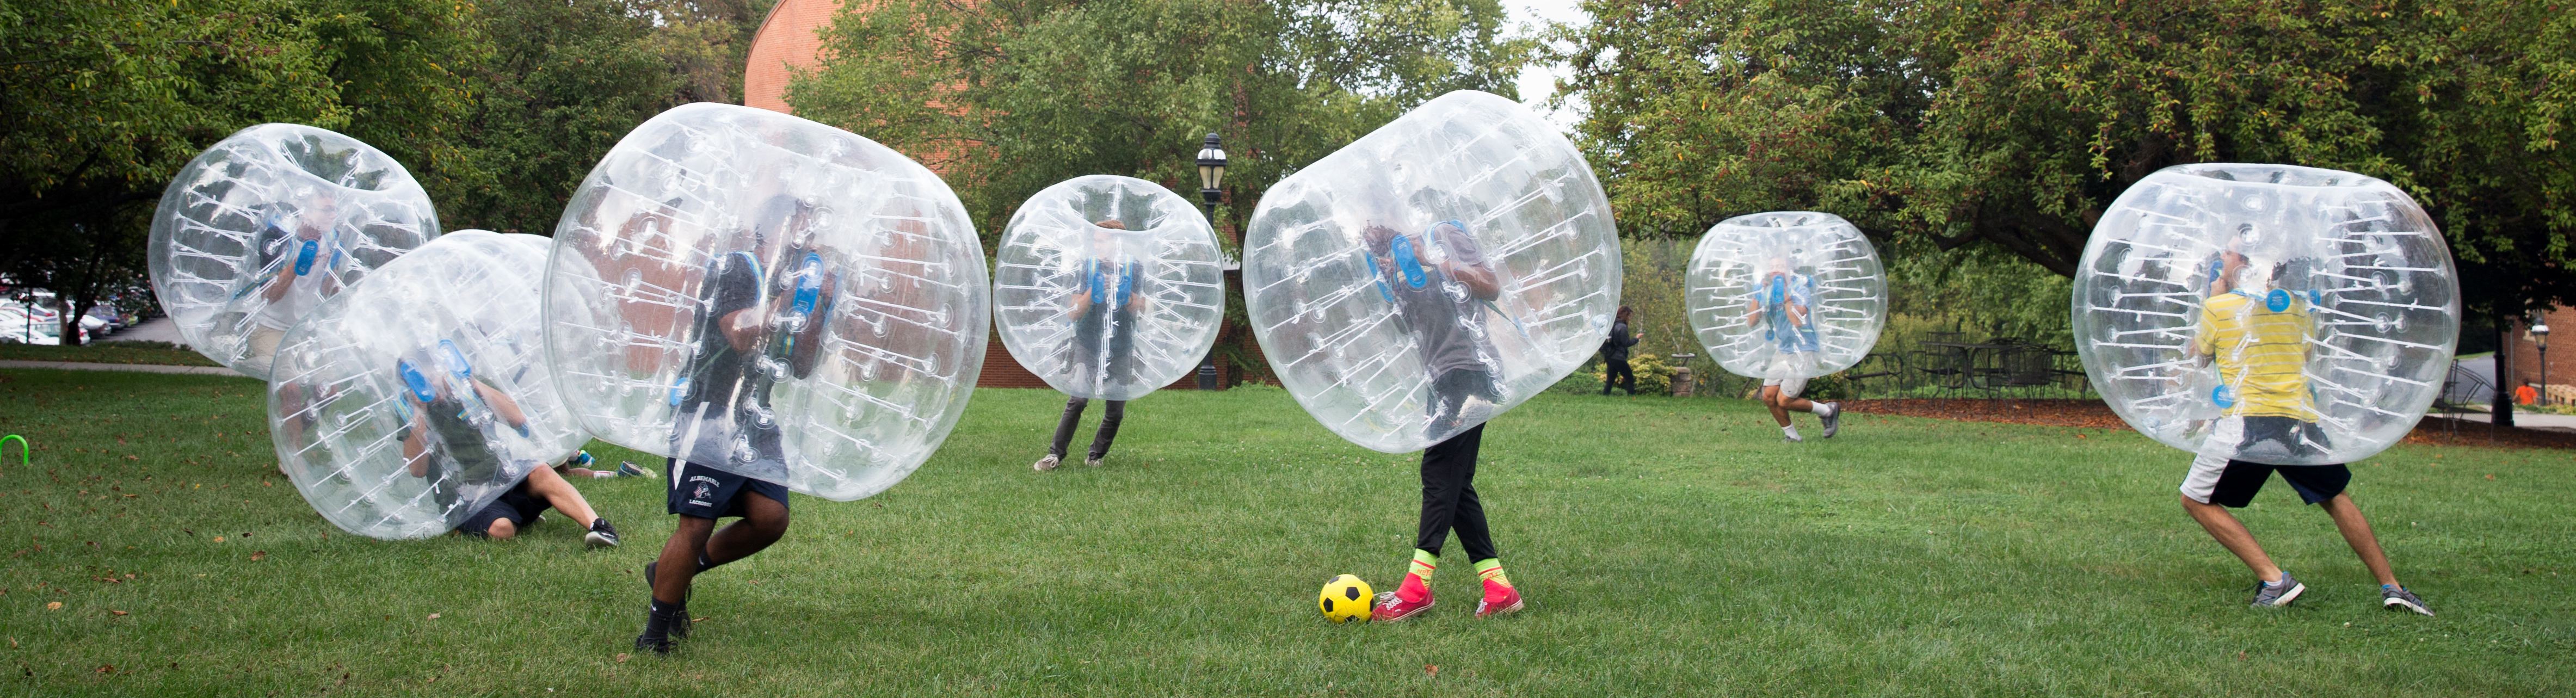 Students playing bubble soccer.